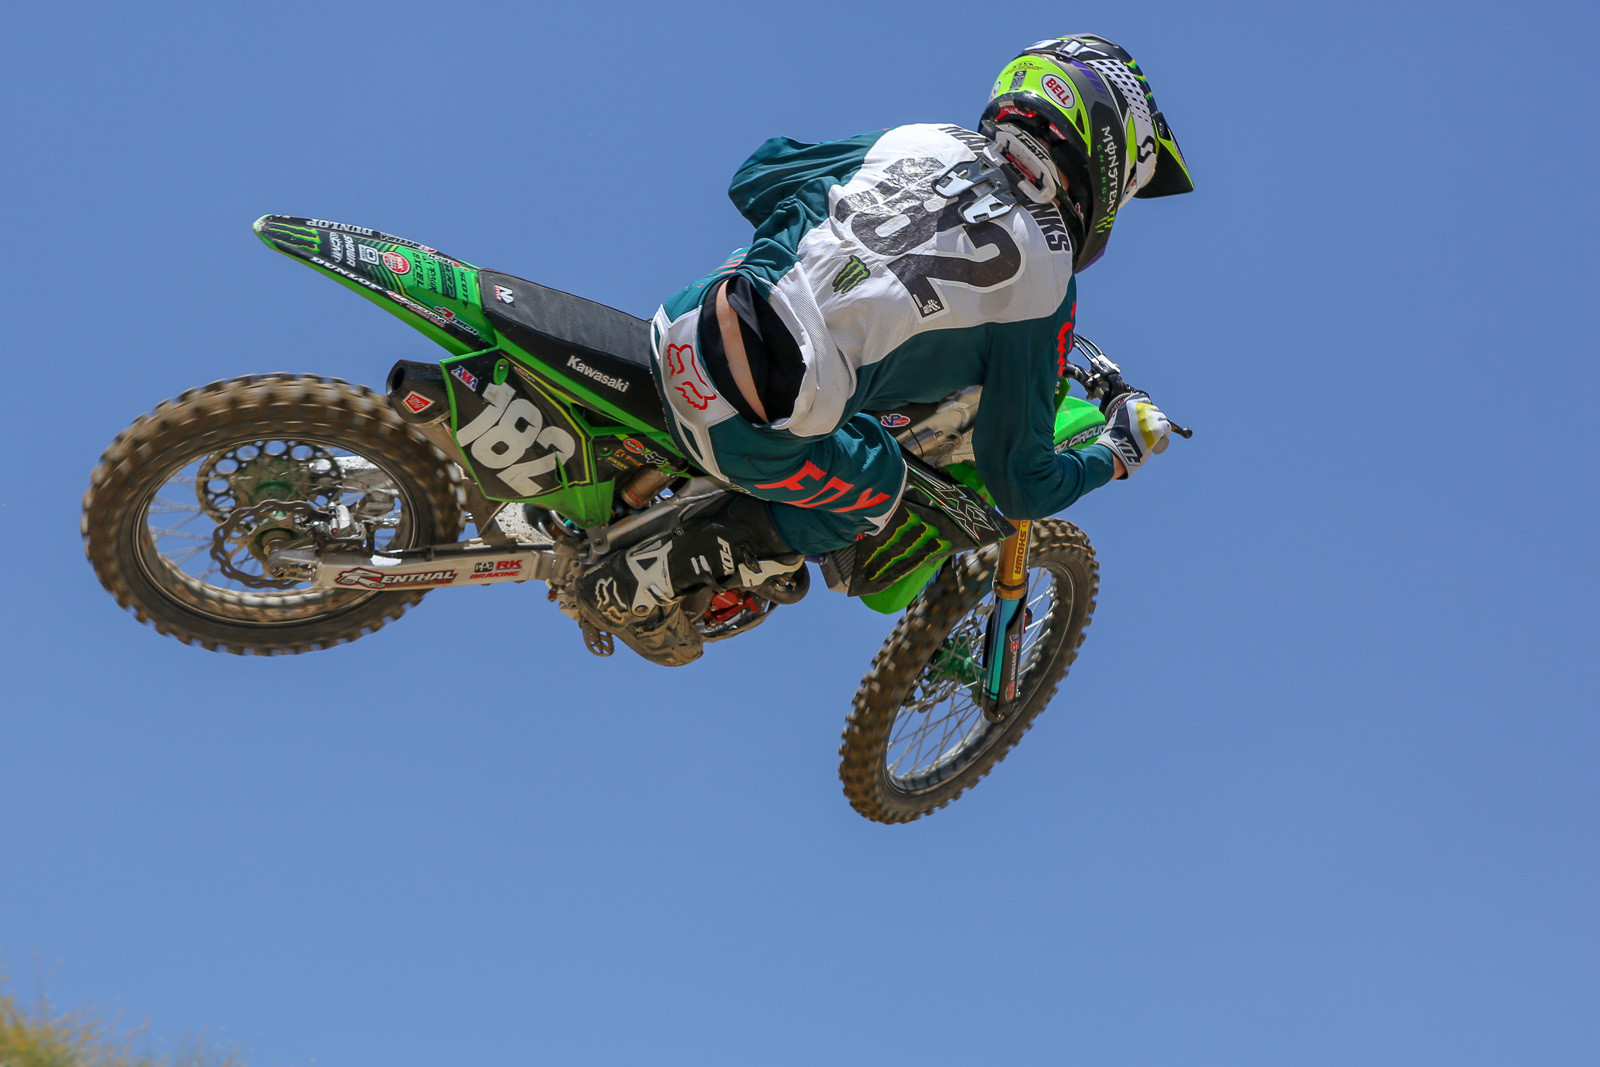 When we got the press release about Garrett Marchbanks joining the Monster Energy Pro Circuit Kawasaki team for the summer, we suspected that it was just one shoe dropping on their summer roster. That got confirmed in Las Vegas when Adam Cianciarulo let it slip that he was out due to knee surgery. So far Garrett looks plenty speedy, and it'll be interesting to see where he slots in this summer.